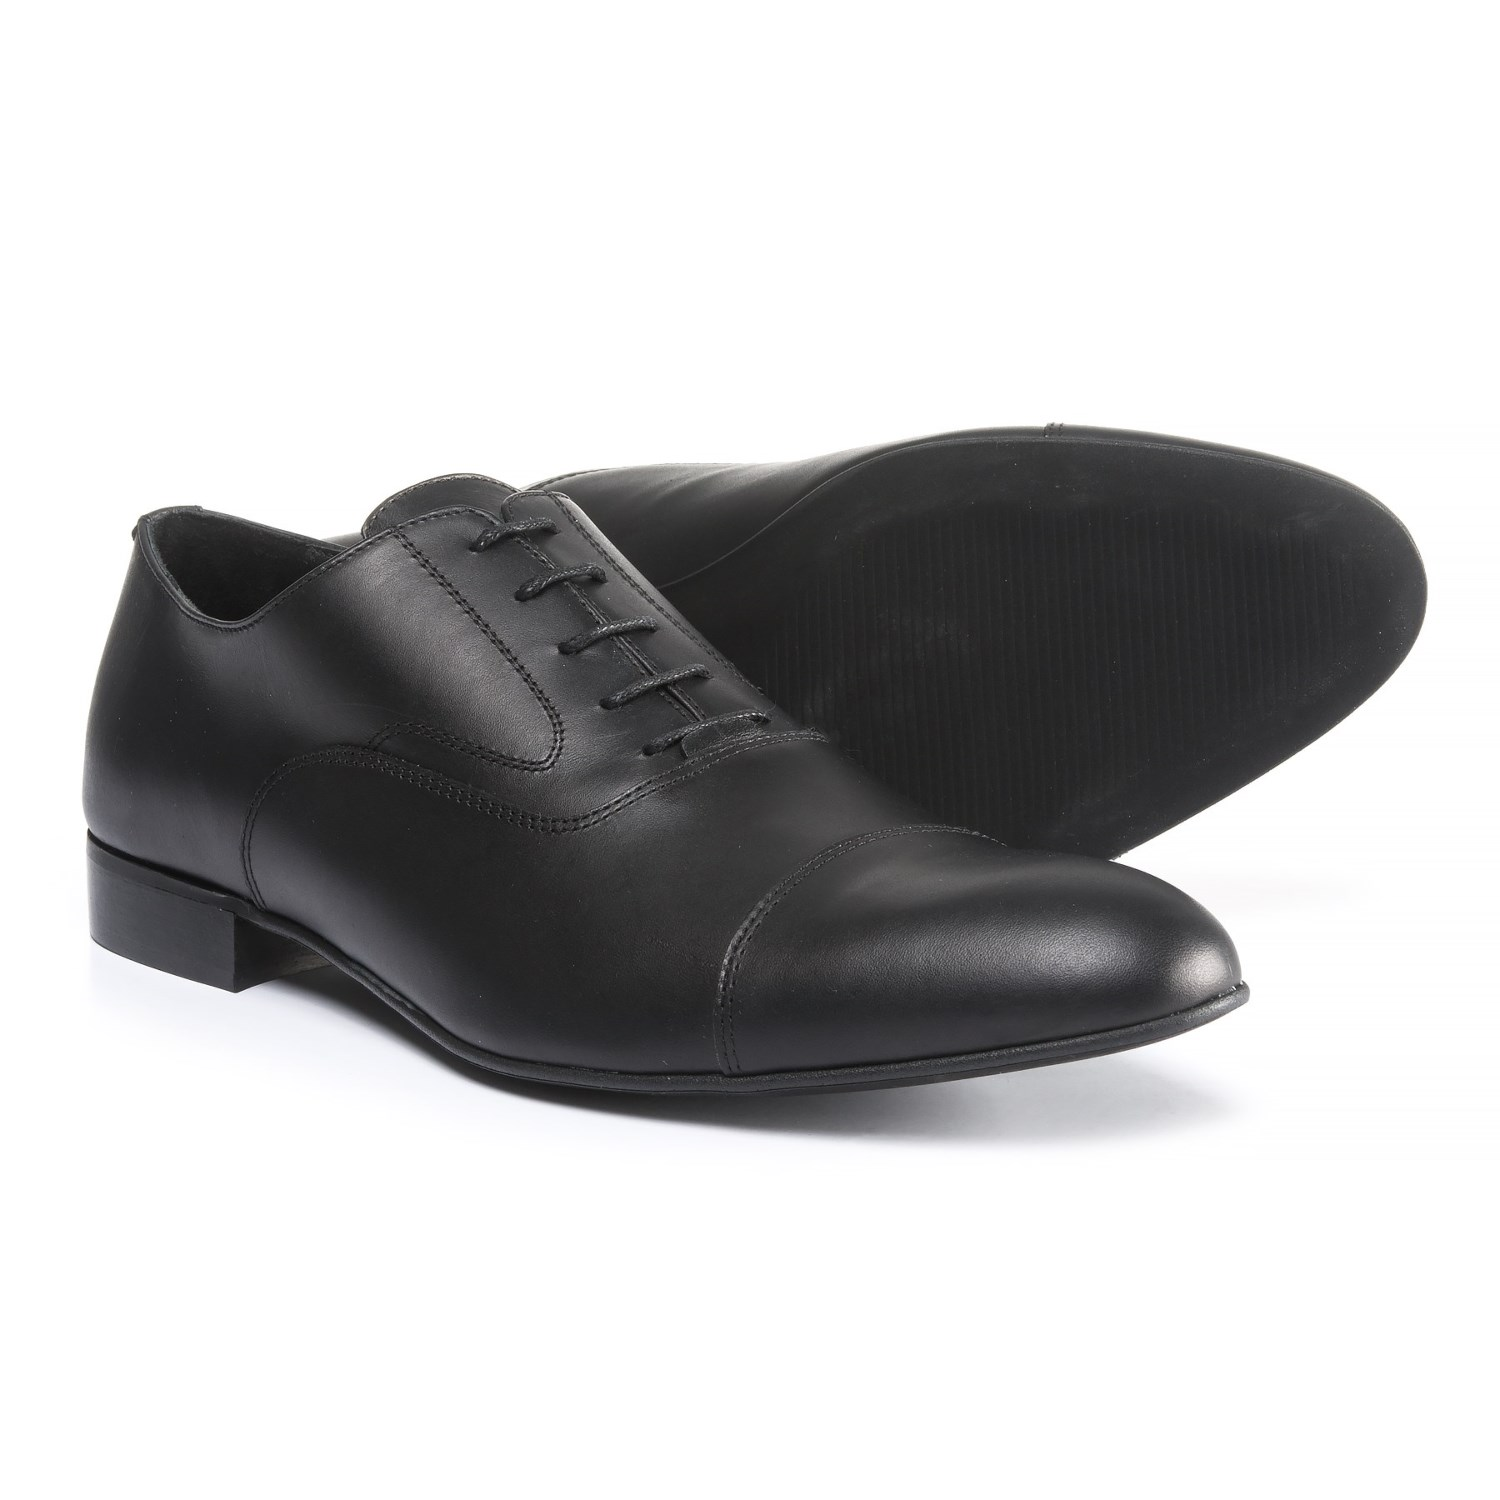 A. Testoni Diffusion Cap-Toe Oxford Shoes - Leather (For Men)